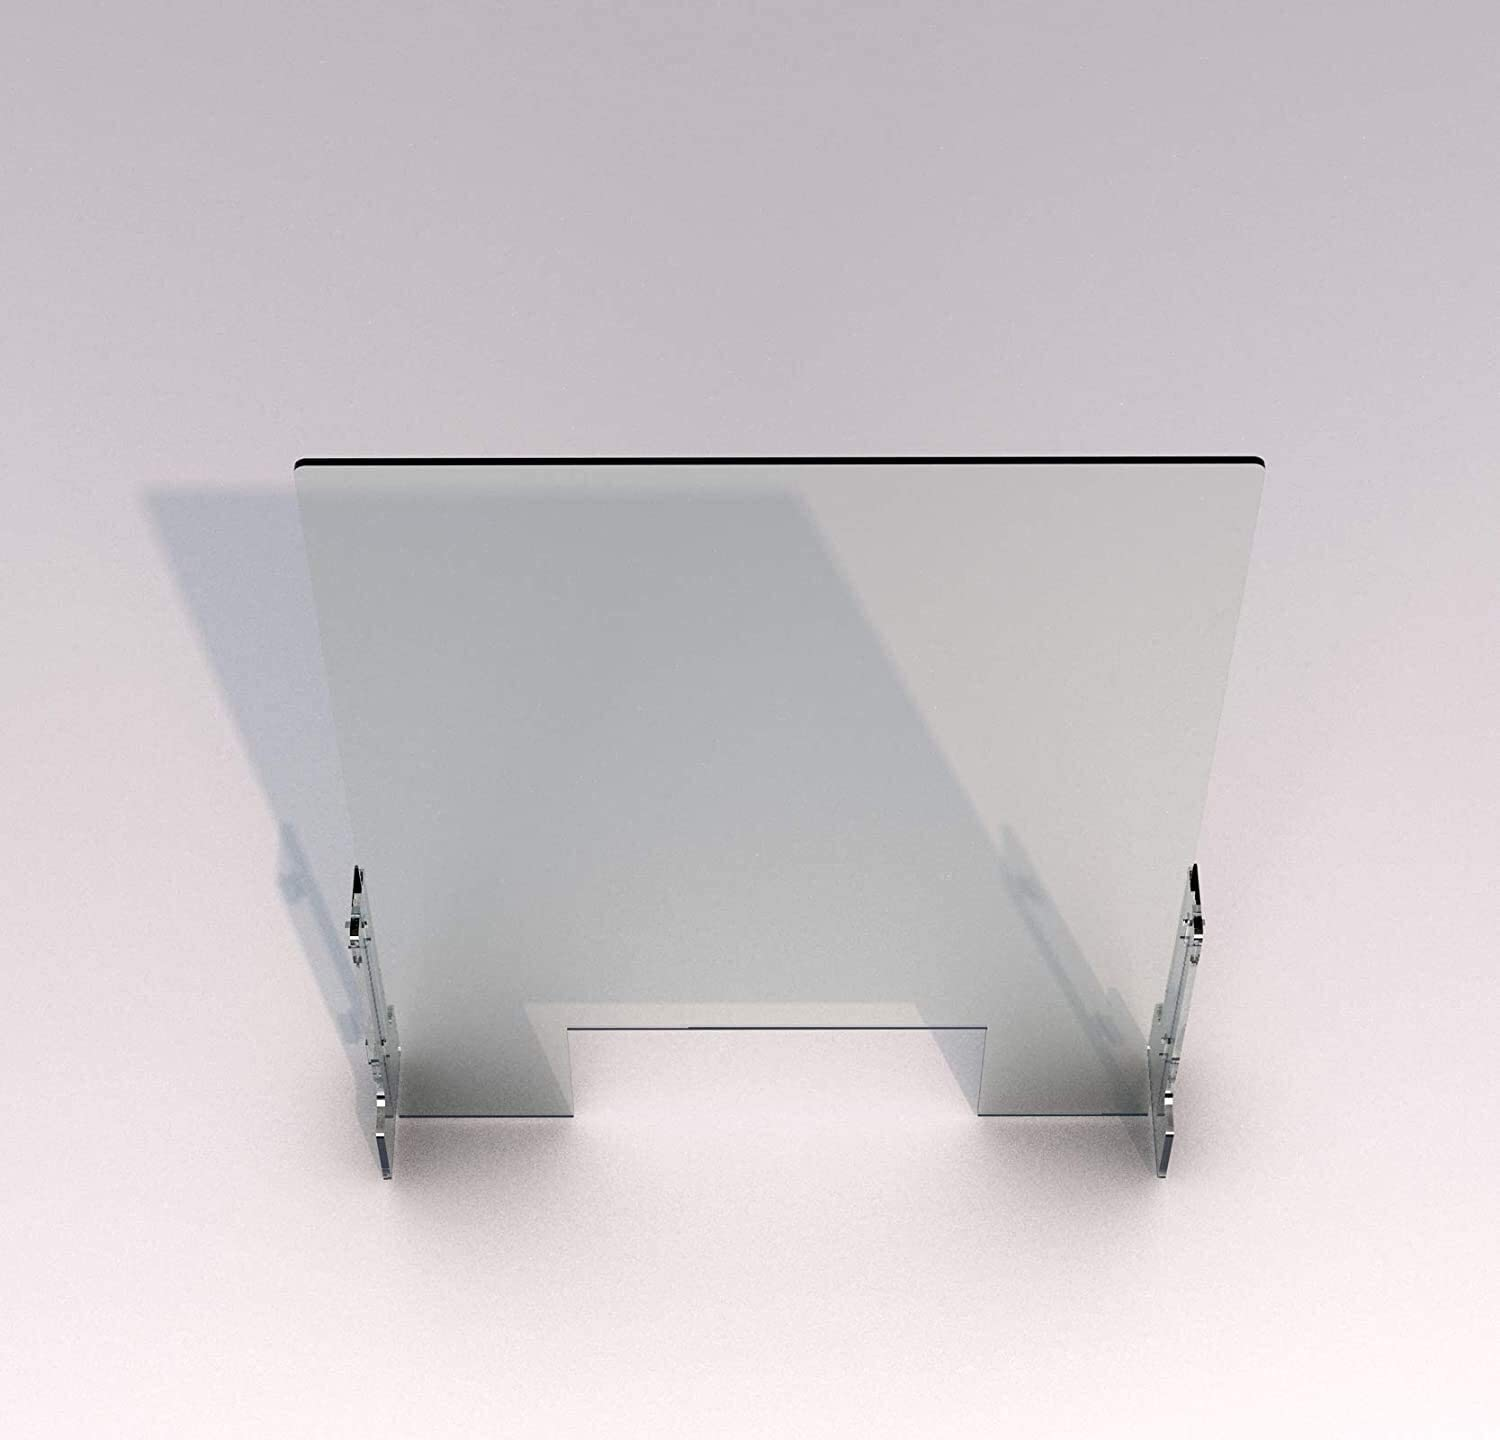 Sneeze Guard for Counter and Desk Sneeze Guard Plastic Protection Barrier Countertop Barrier Sheild Table Desk Check Counter Store Size : 24 W x 24 H